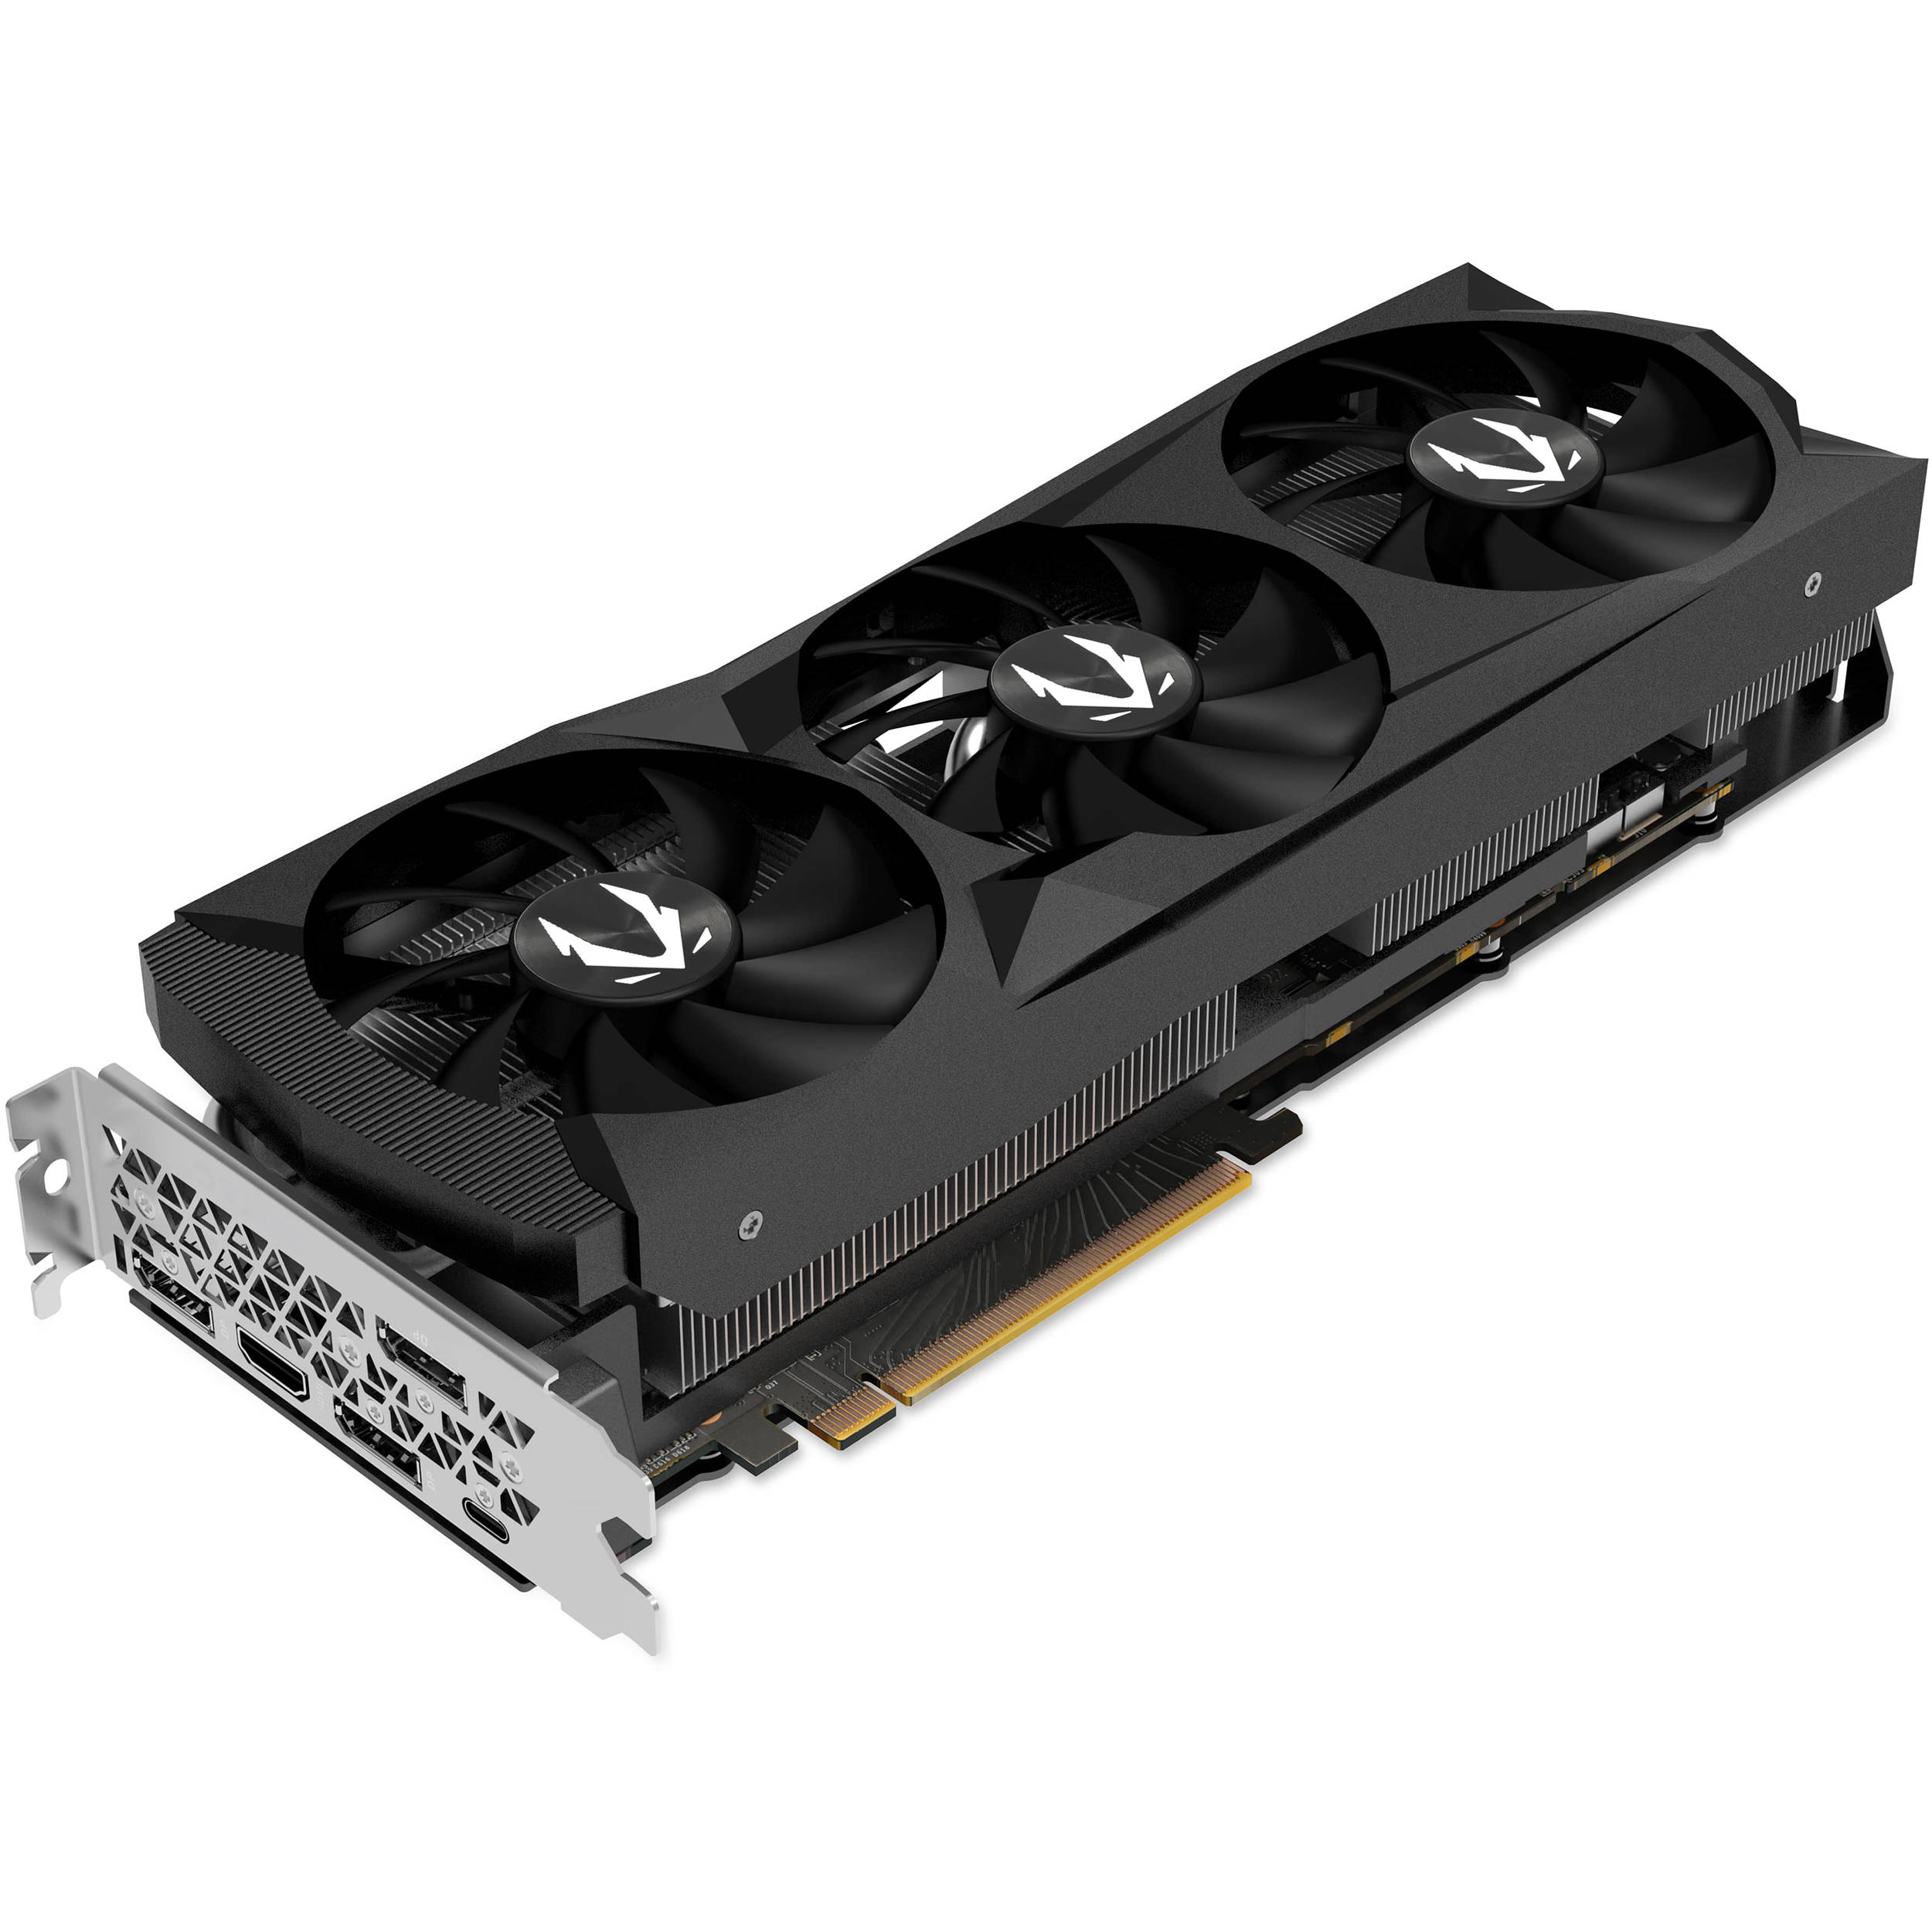 ZOTAC GAMING GeForce RTX 2070 AMP Extreme Core Graphics Card